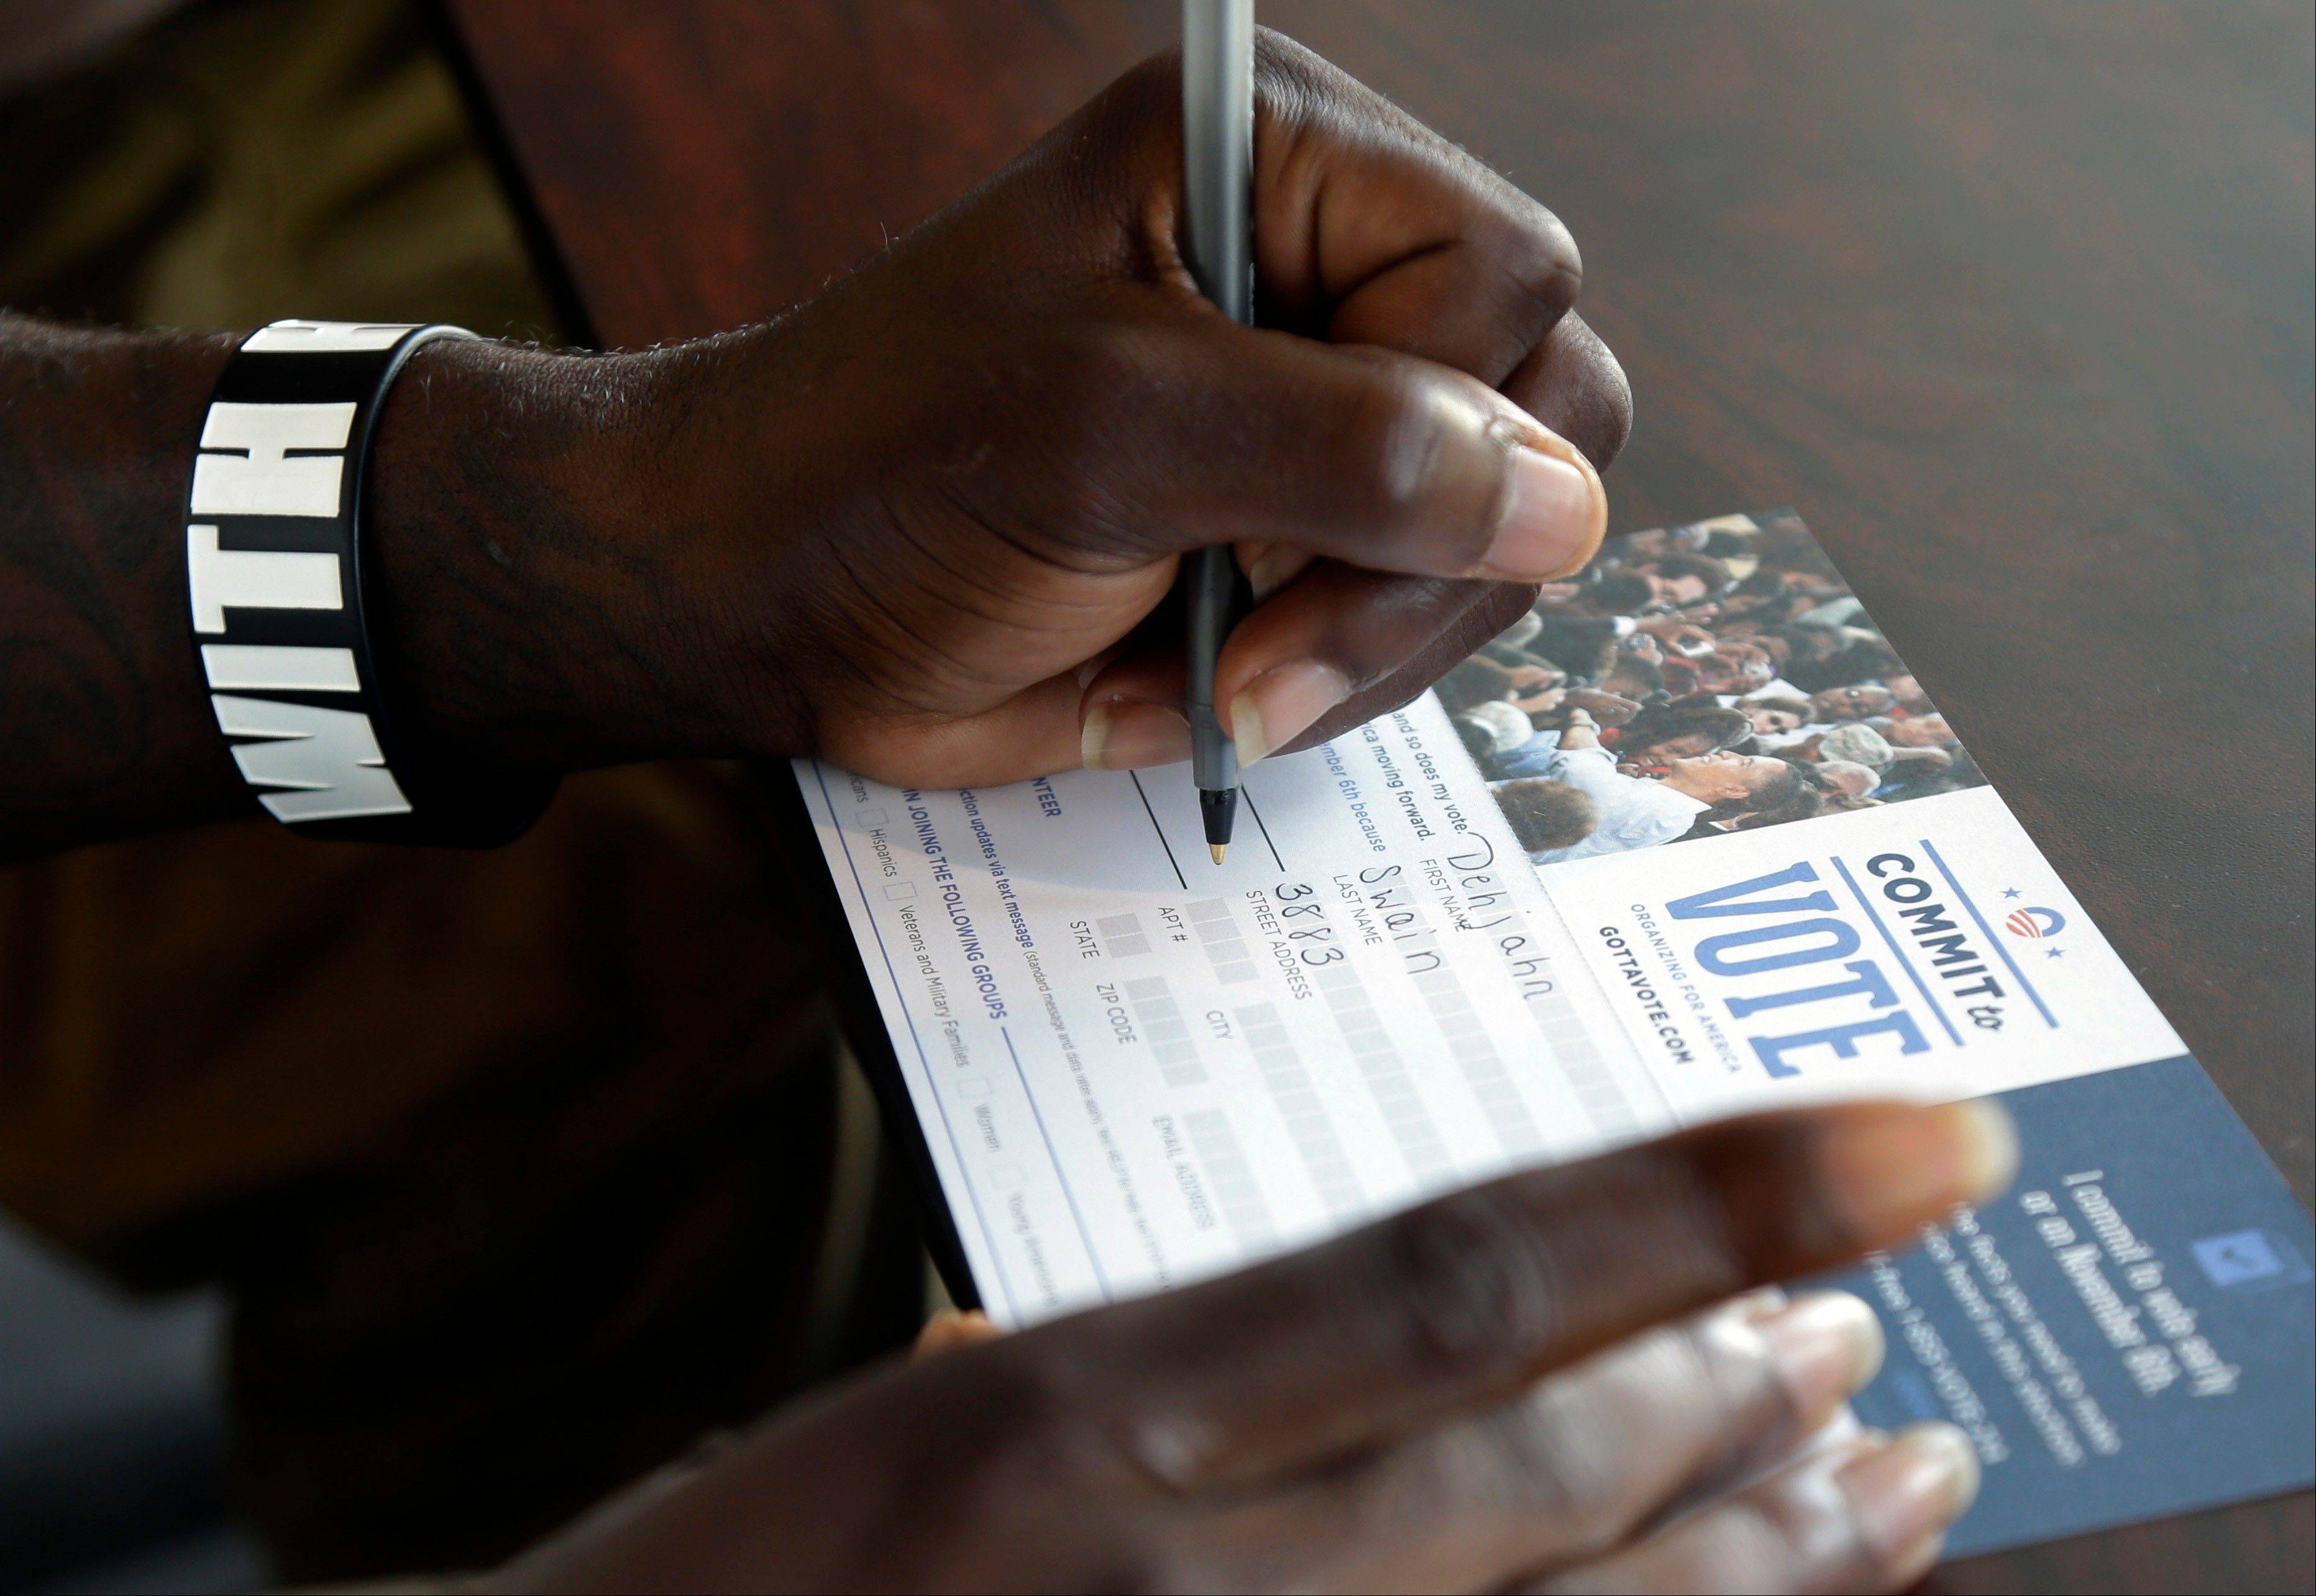 Dehjahn Swain, 19, fills out a Commit to Vote card after registering to vote at a campaign office for President Barack Obama, Monday, Oct. 8, 2012 in Miami. Tuesday is the last day to register to vote in the general election Nov. 6.